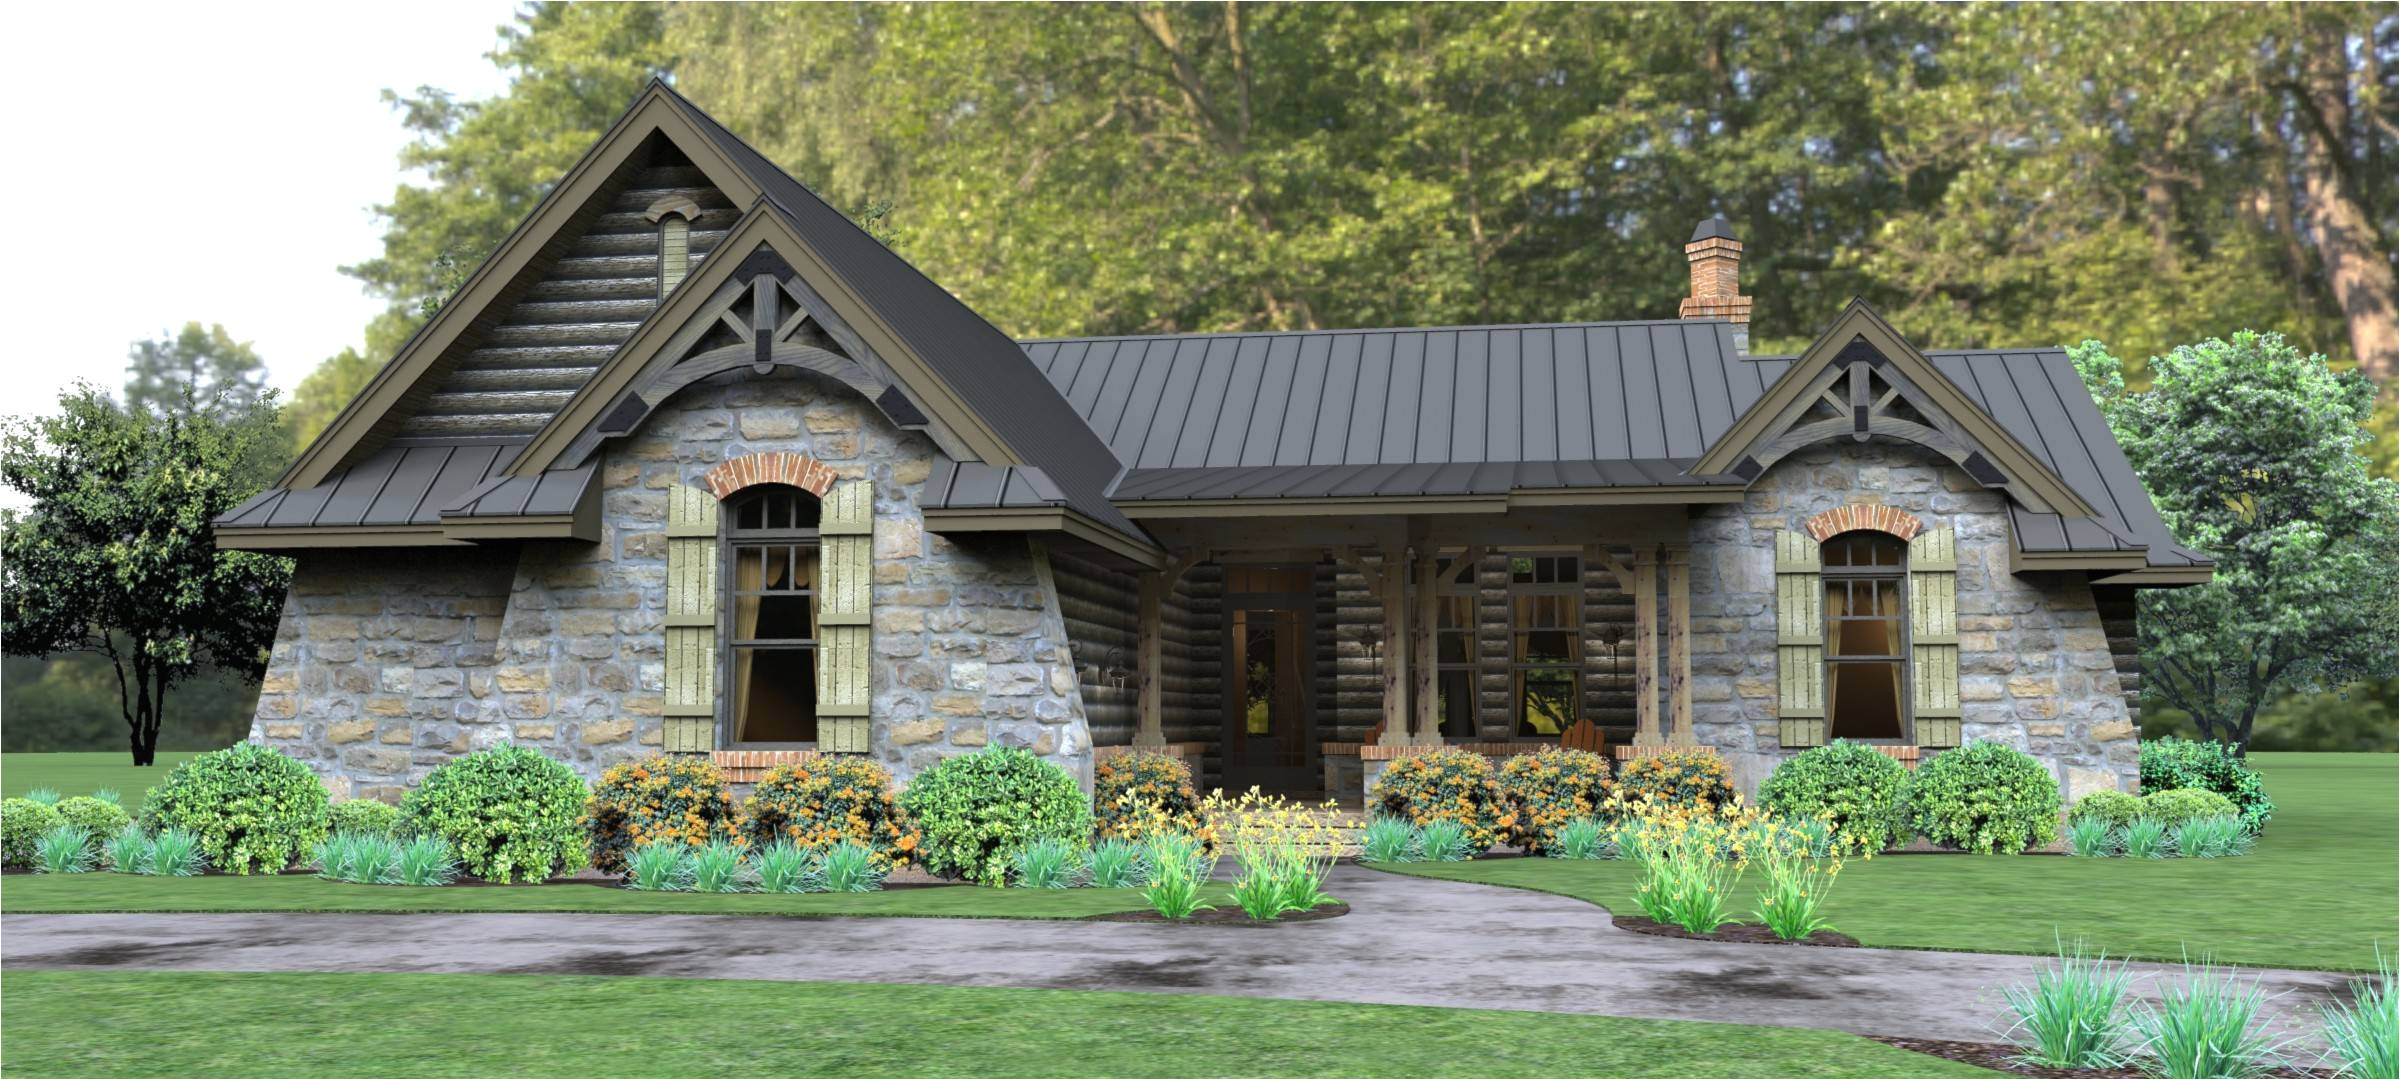 Small Icf Home Plans Rustic Mountain Home Plans Unique 18 Awesome Small Icf